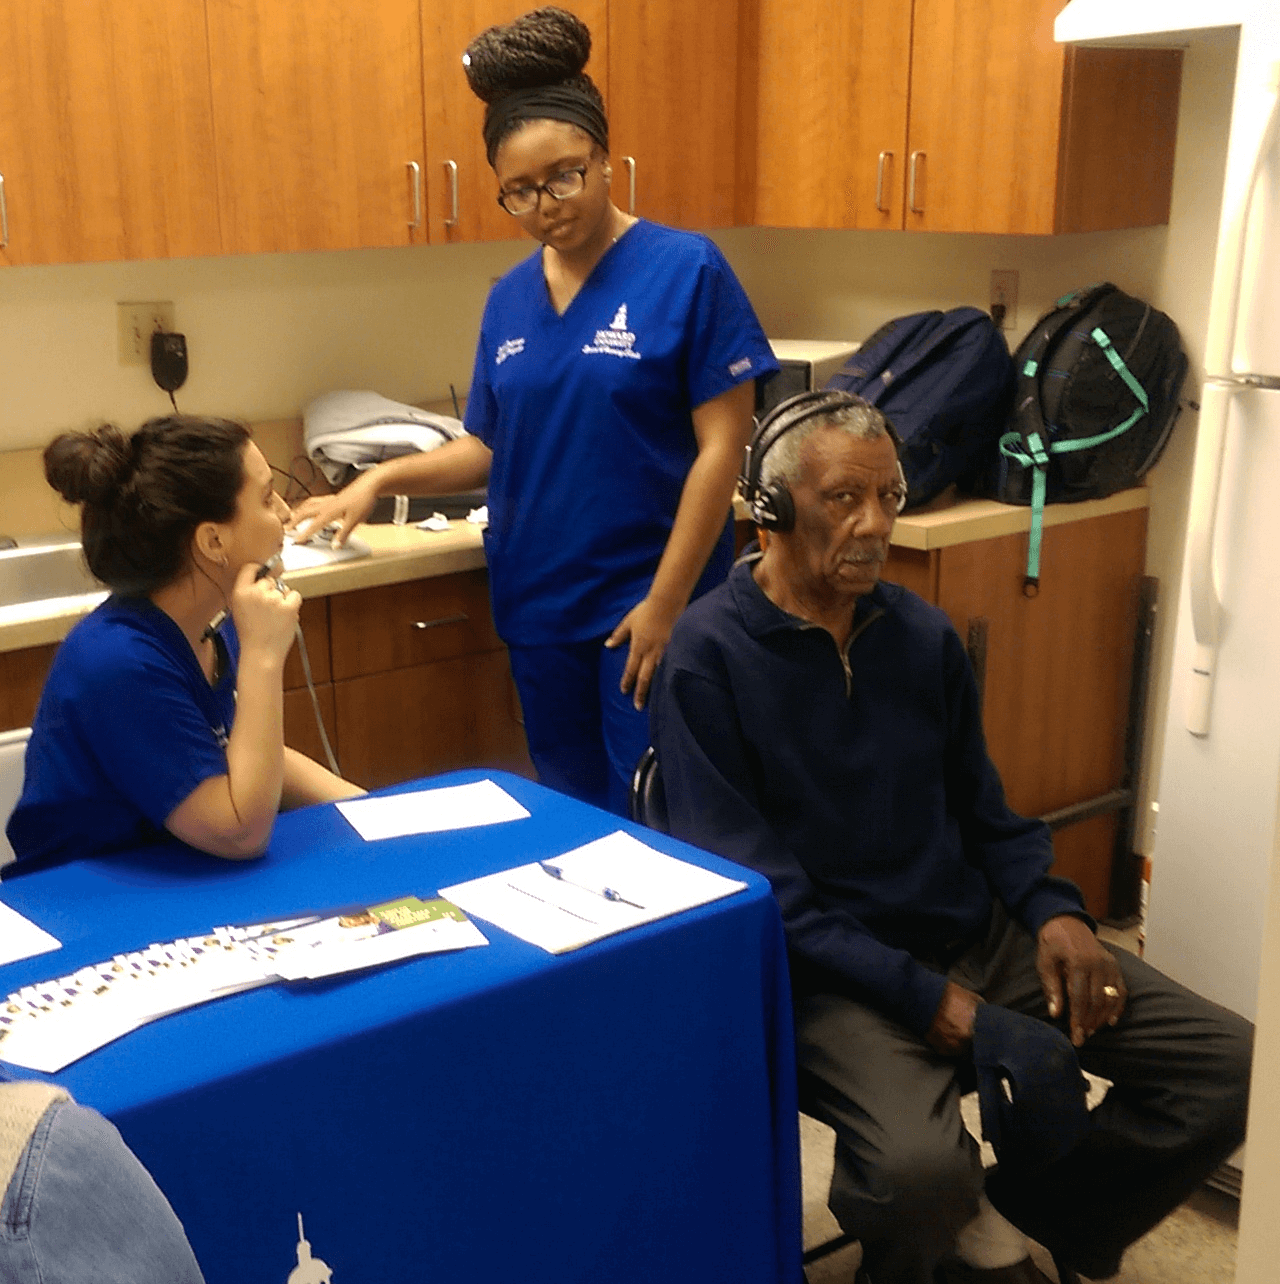 Hearing and Speech Pathology students conduct hearing test.